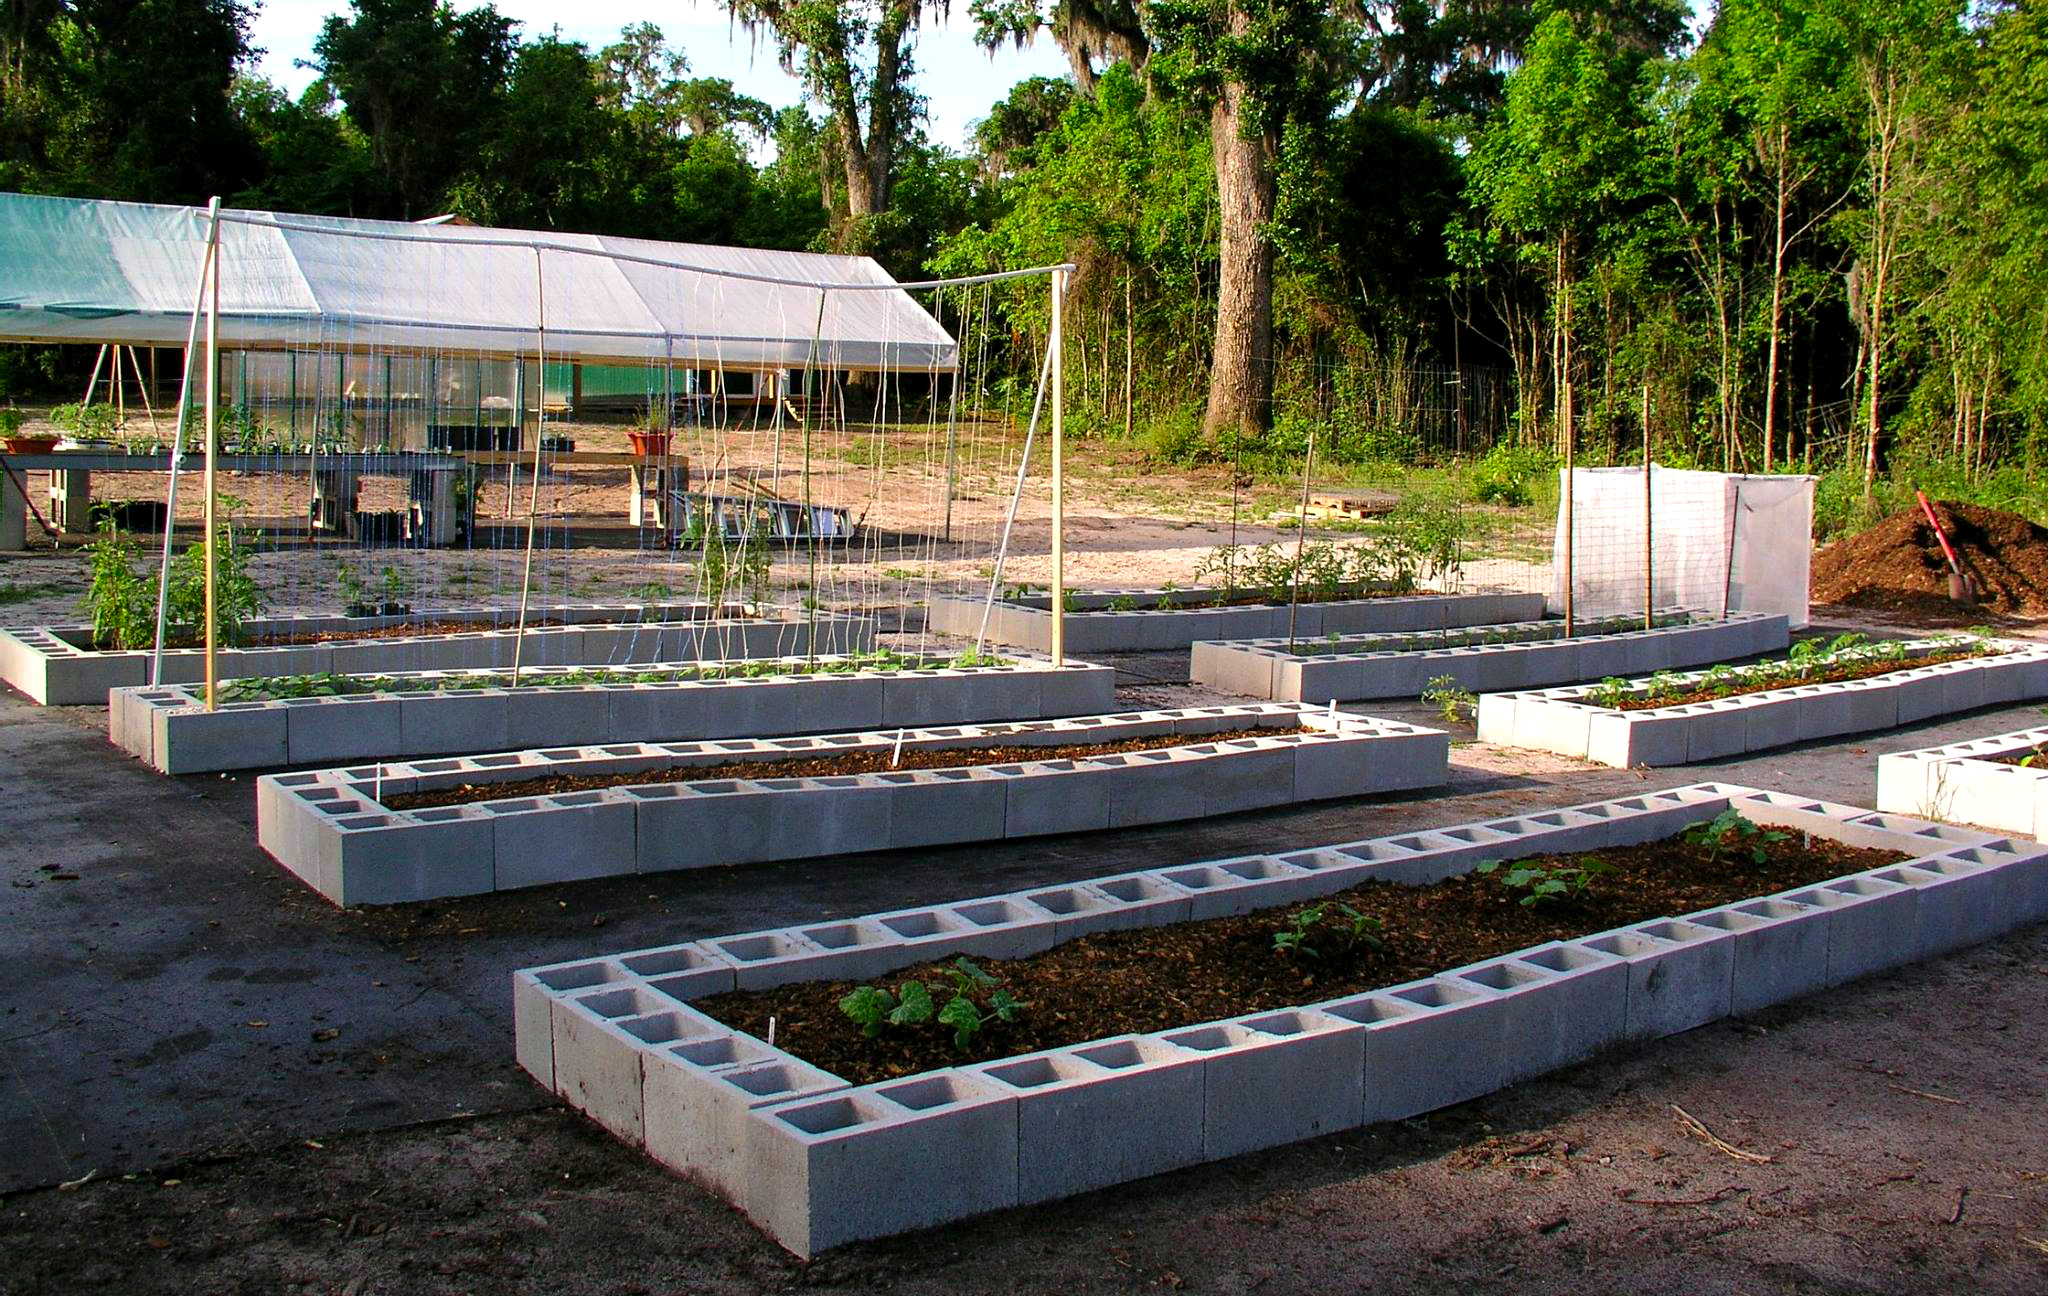 Florida raised beds gardens growin 39 crazy acres Raised garden beds